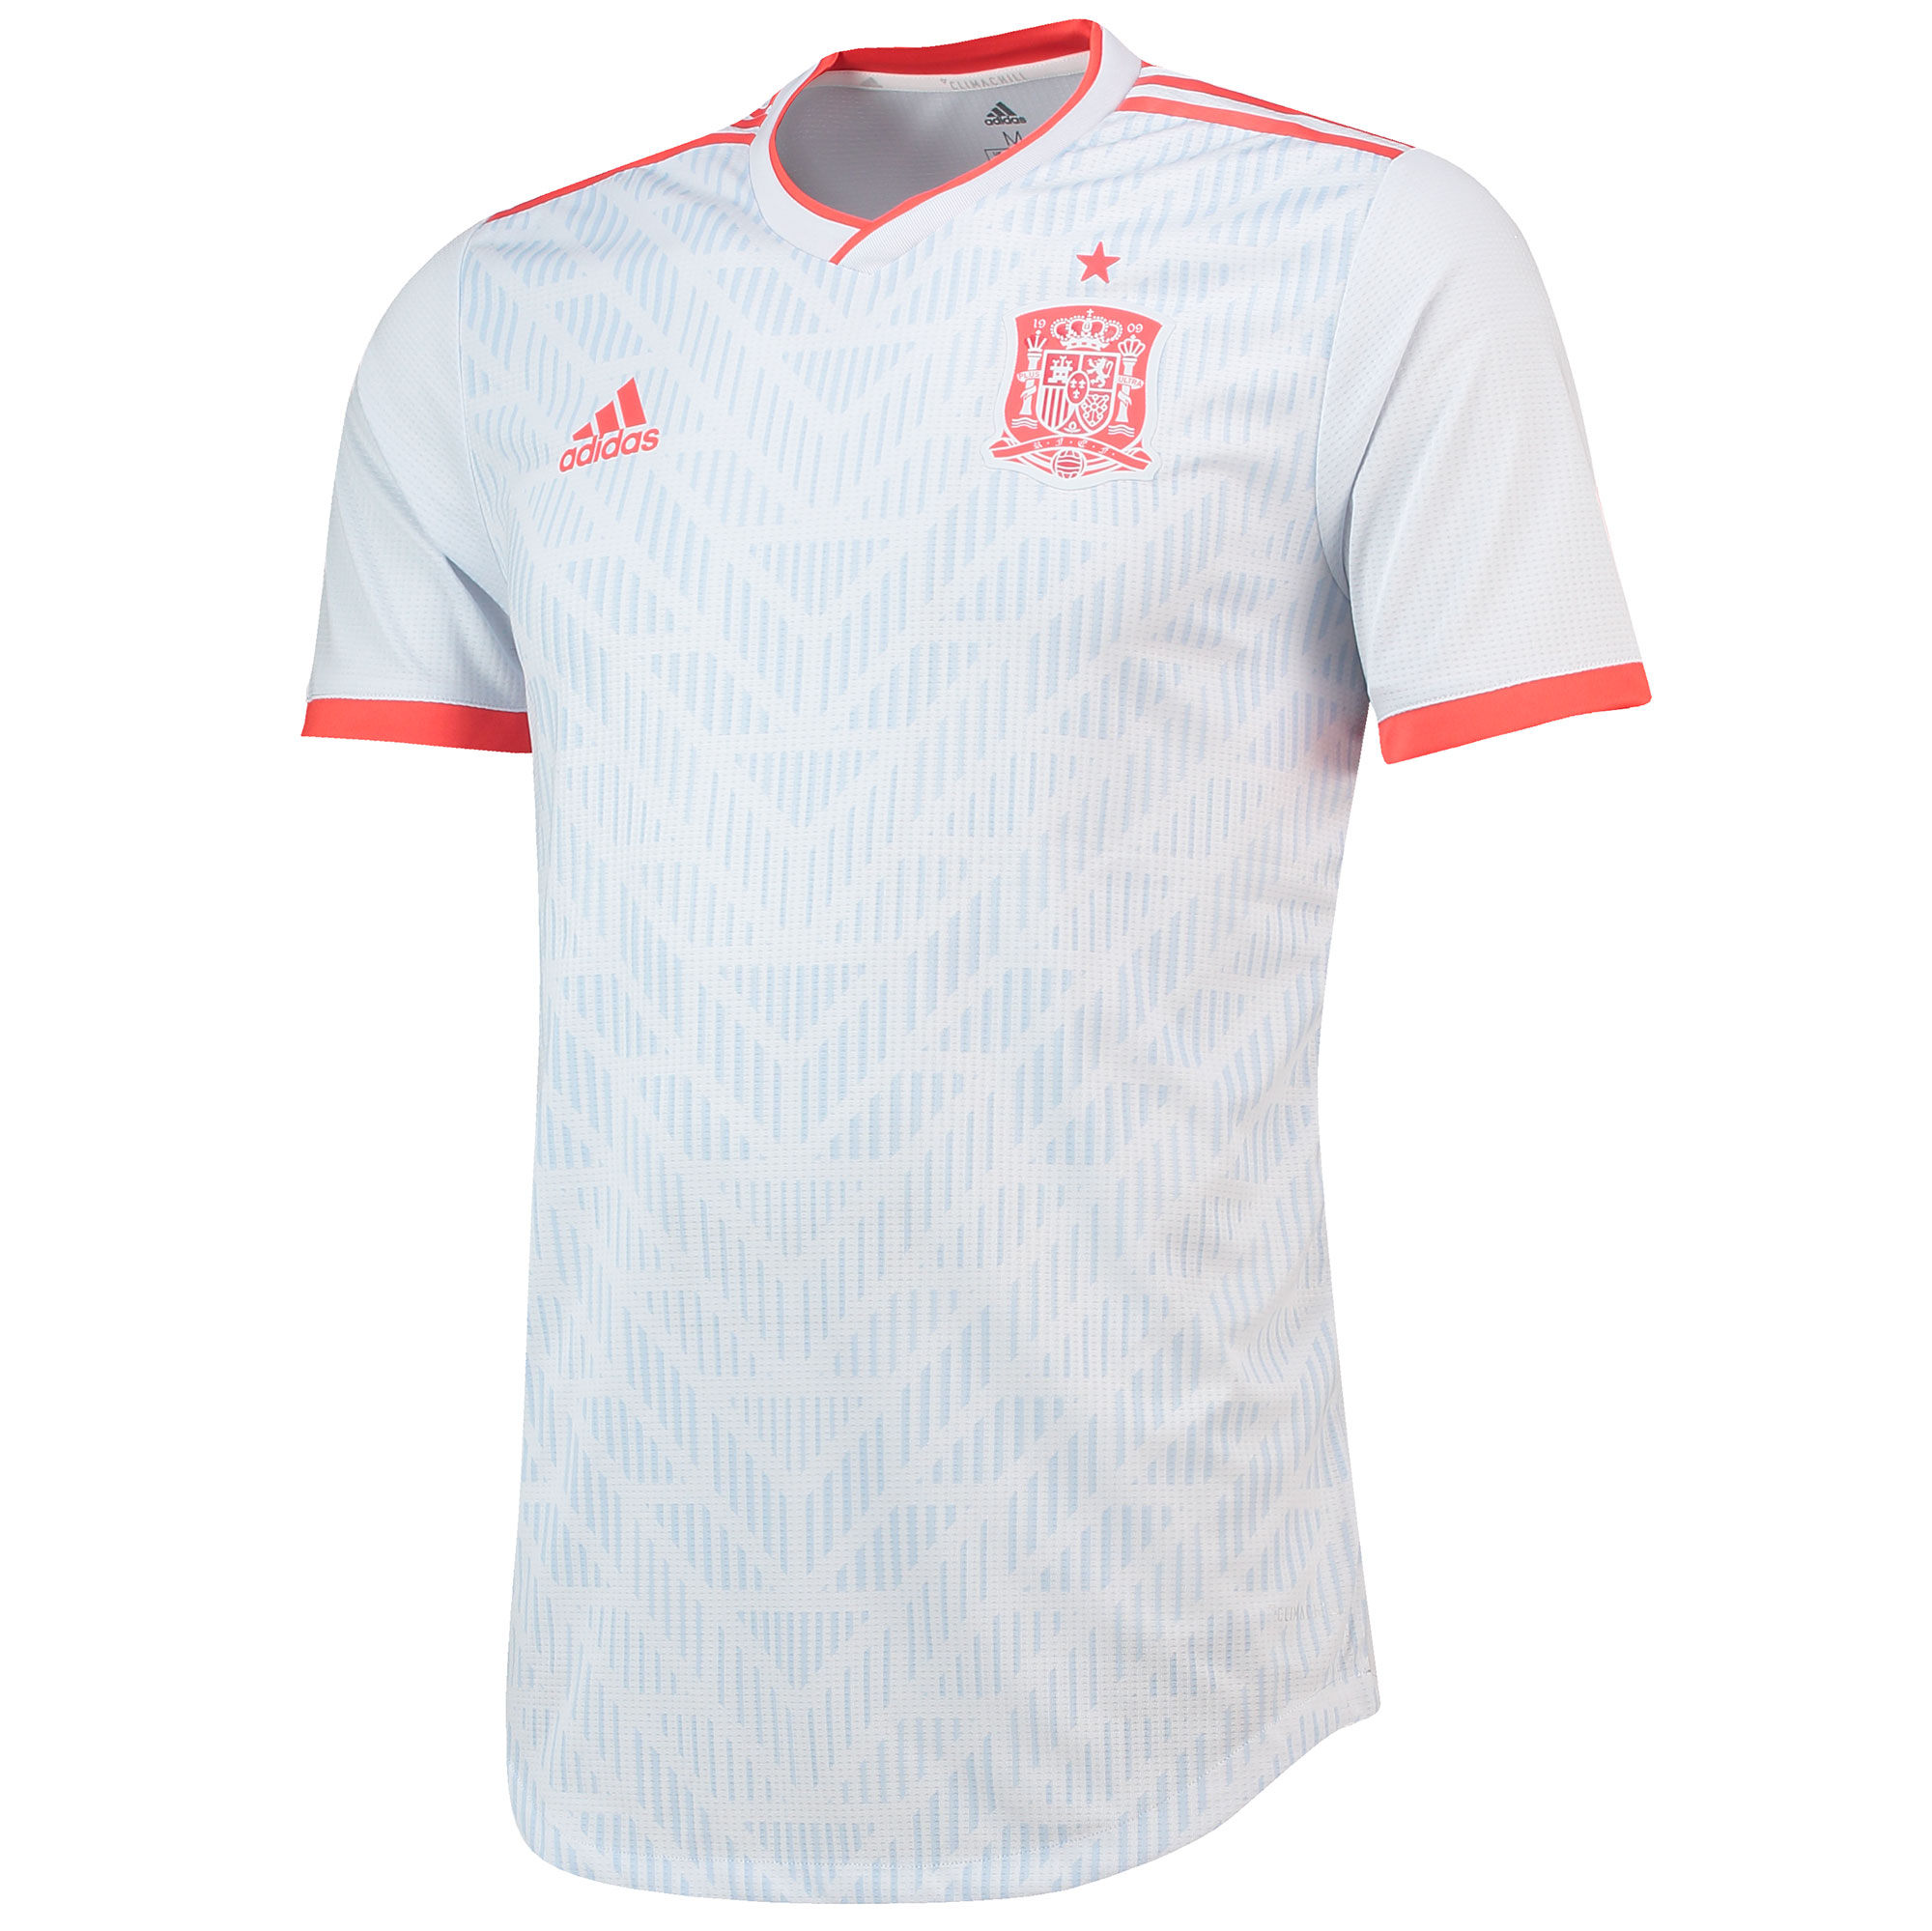 Spain Authentic Away Shirt 2018